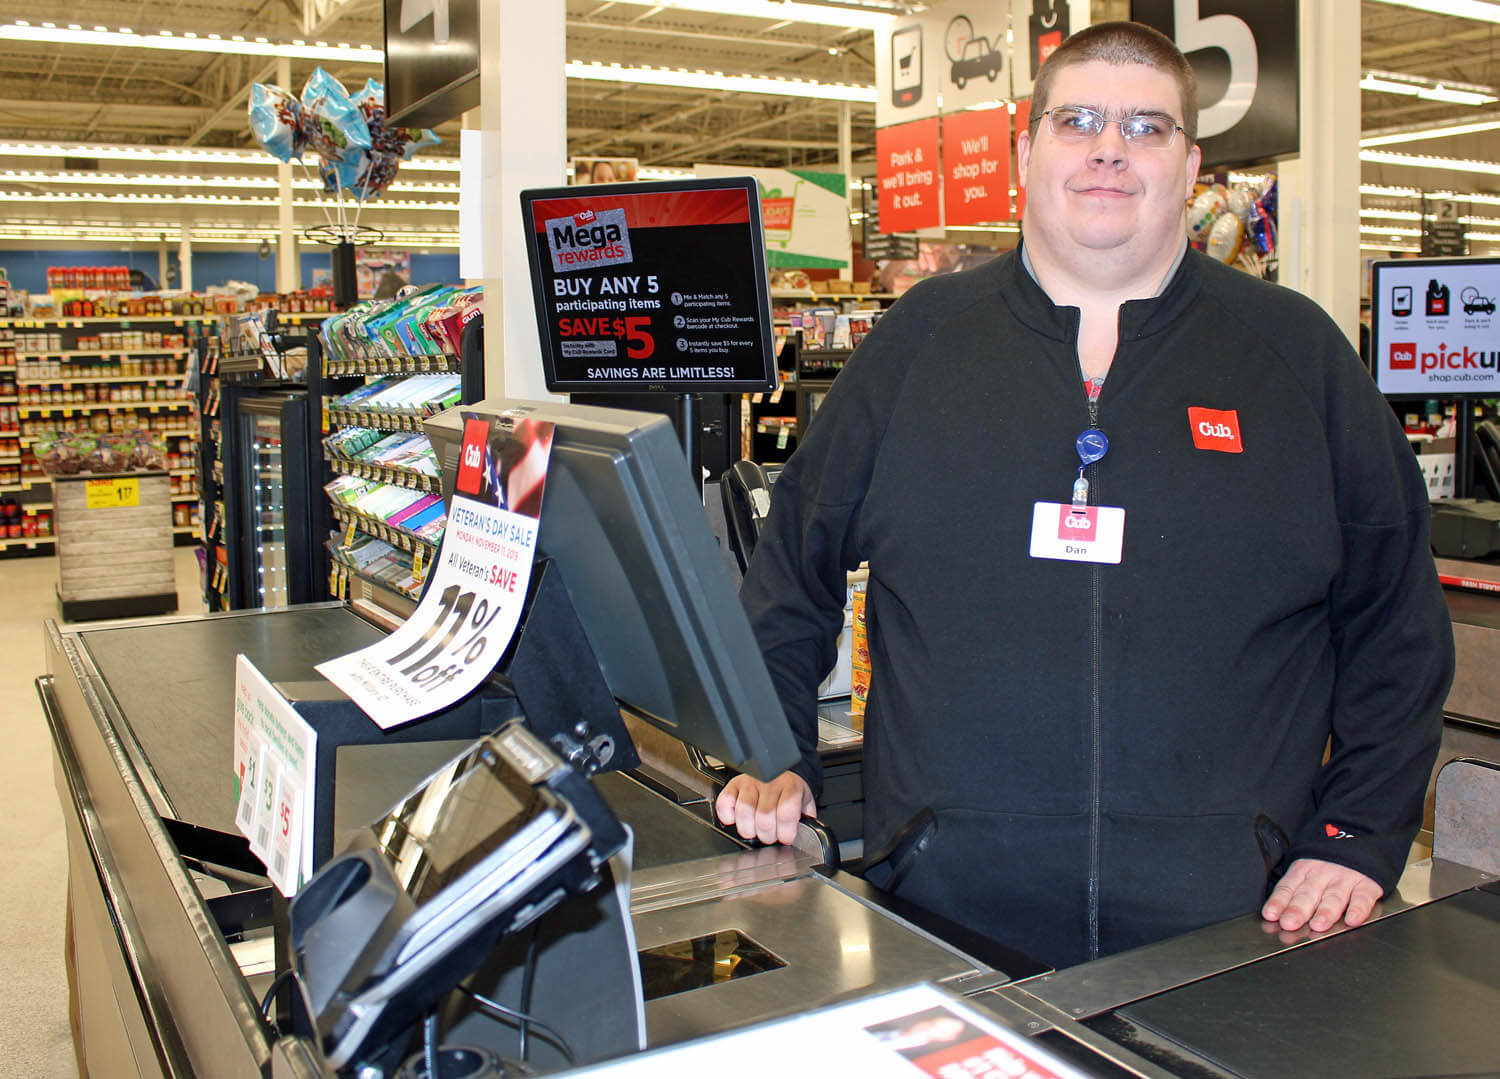 Bringing energy and enthusiam to his work, Dan Beauregard excels at cashiering job at Cub Foods